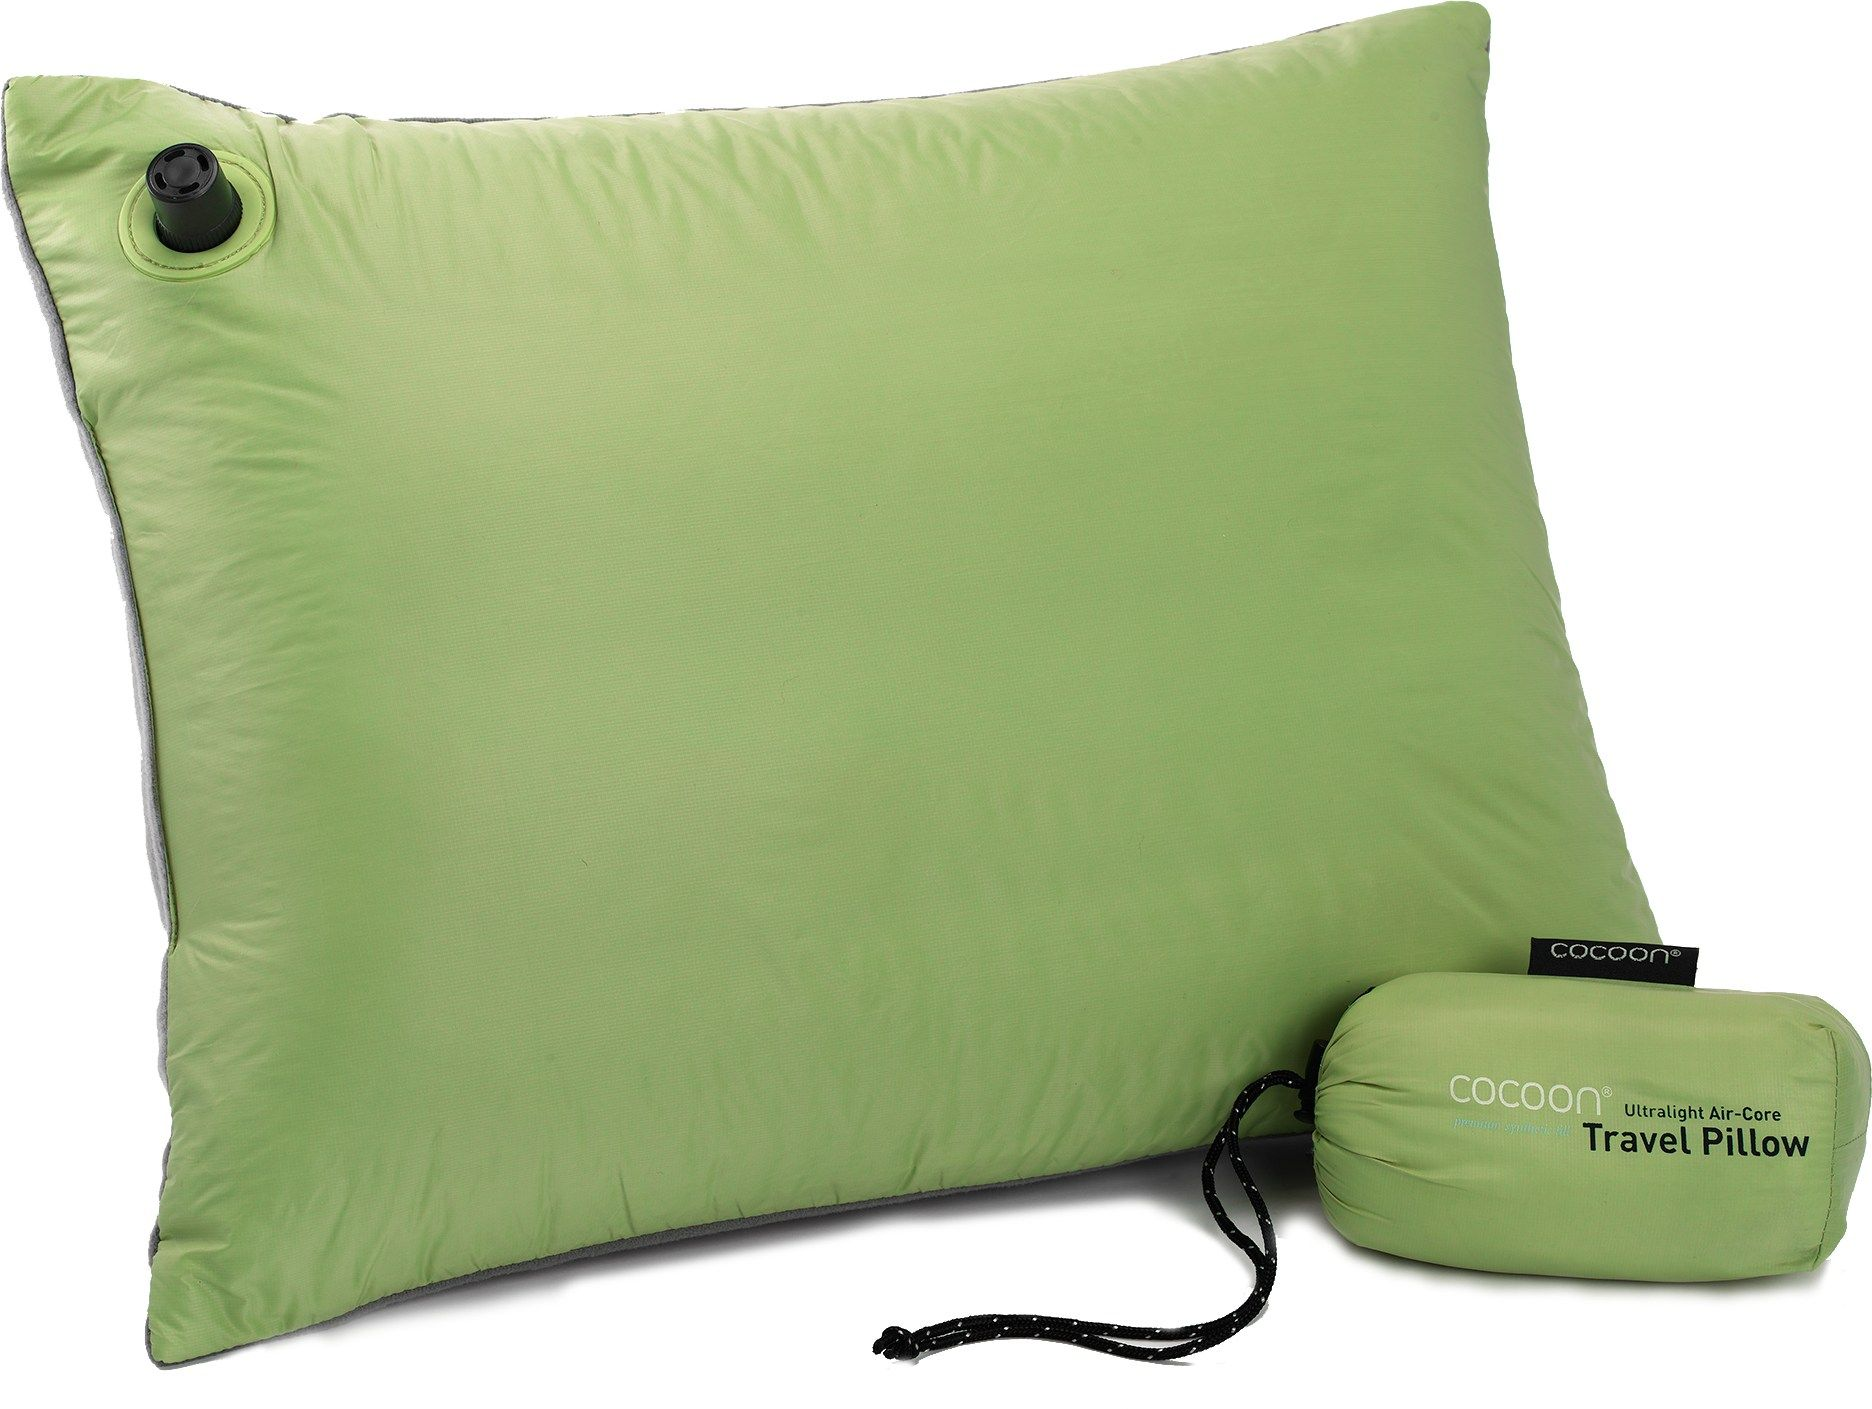 Cocoon Ultralight AirCore Pillow Camping pillows